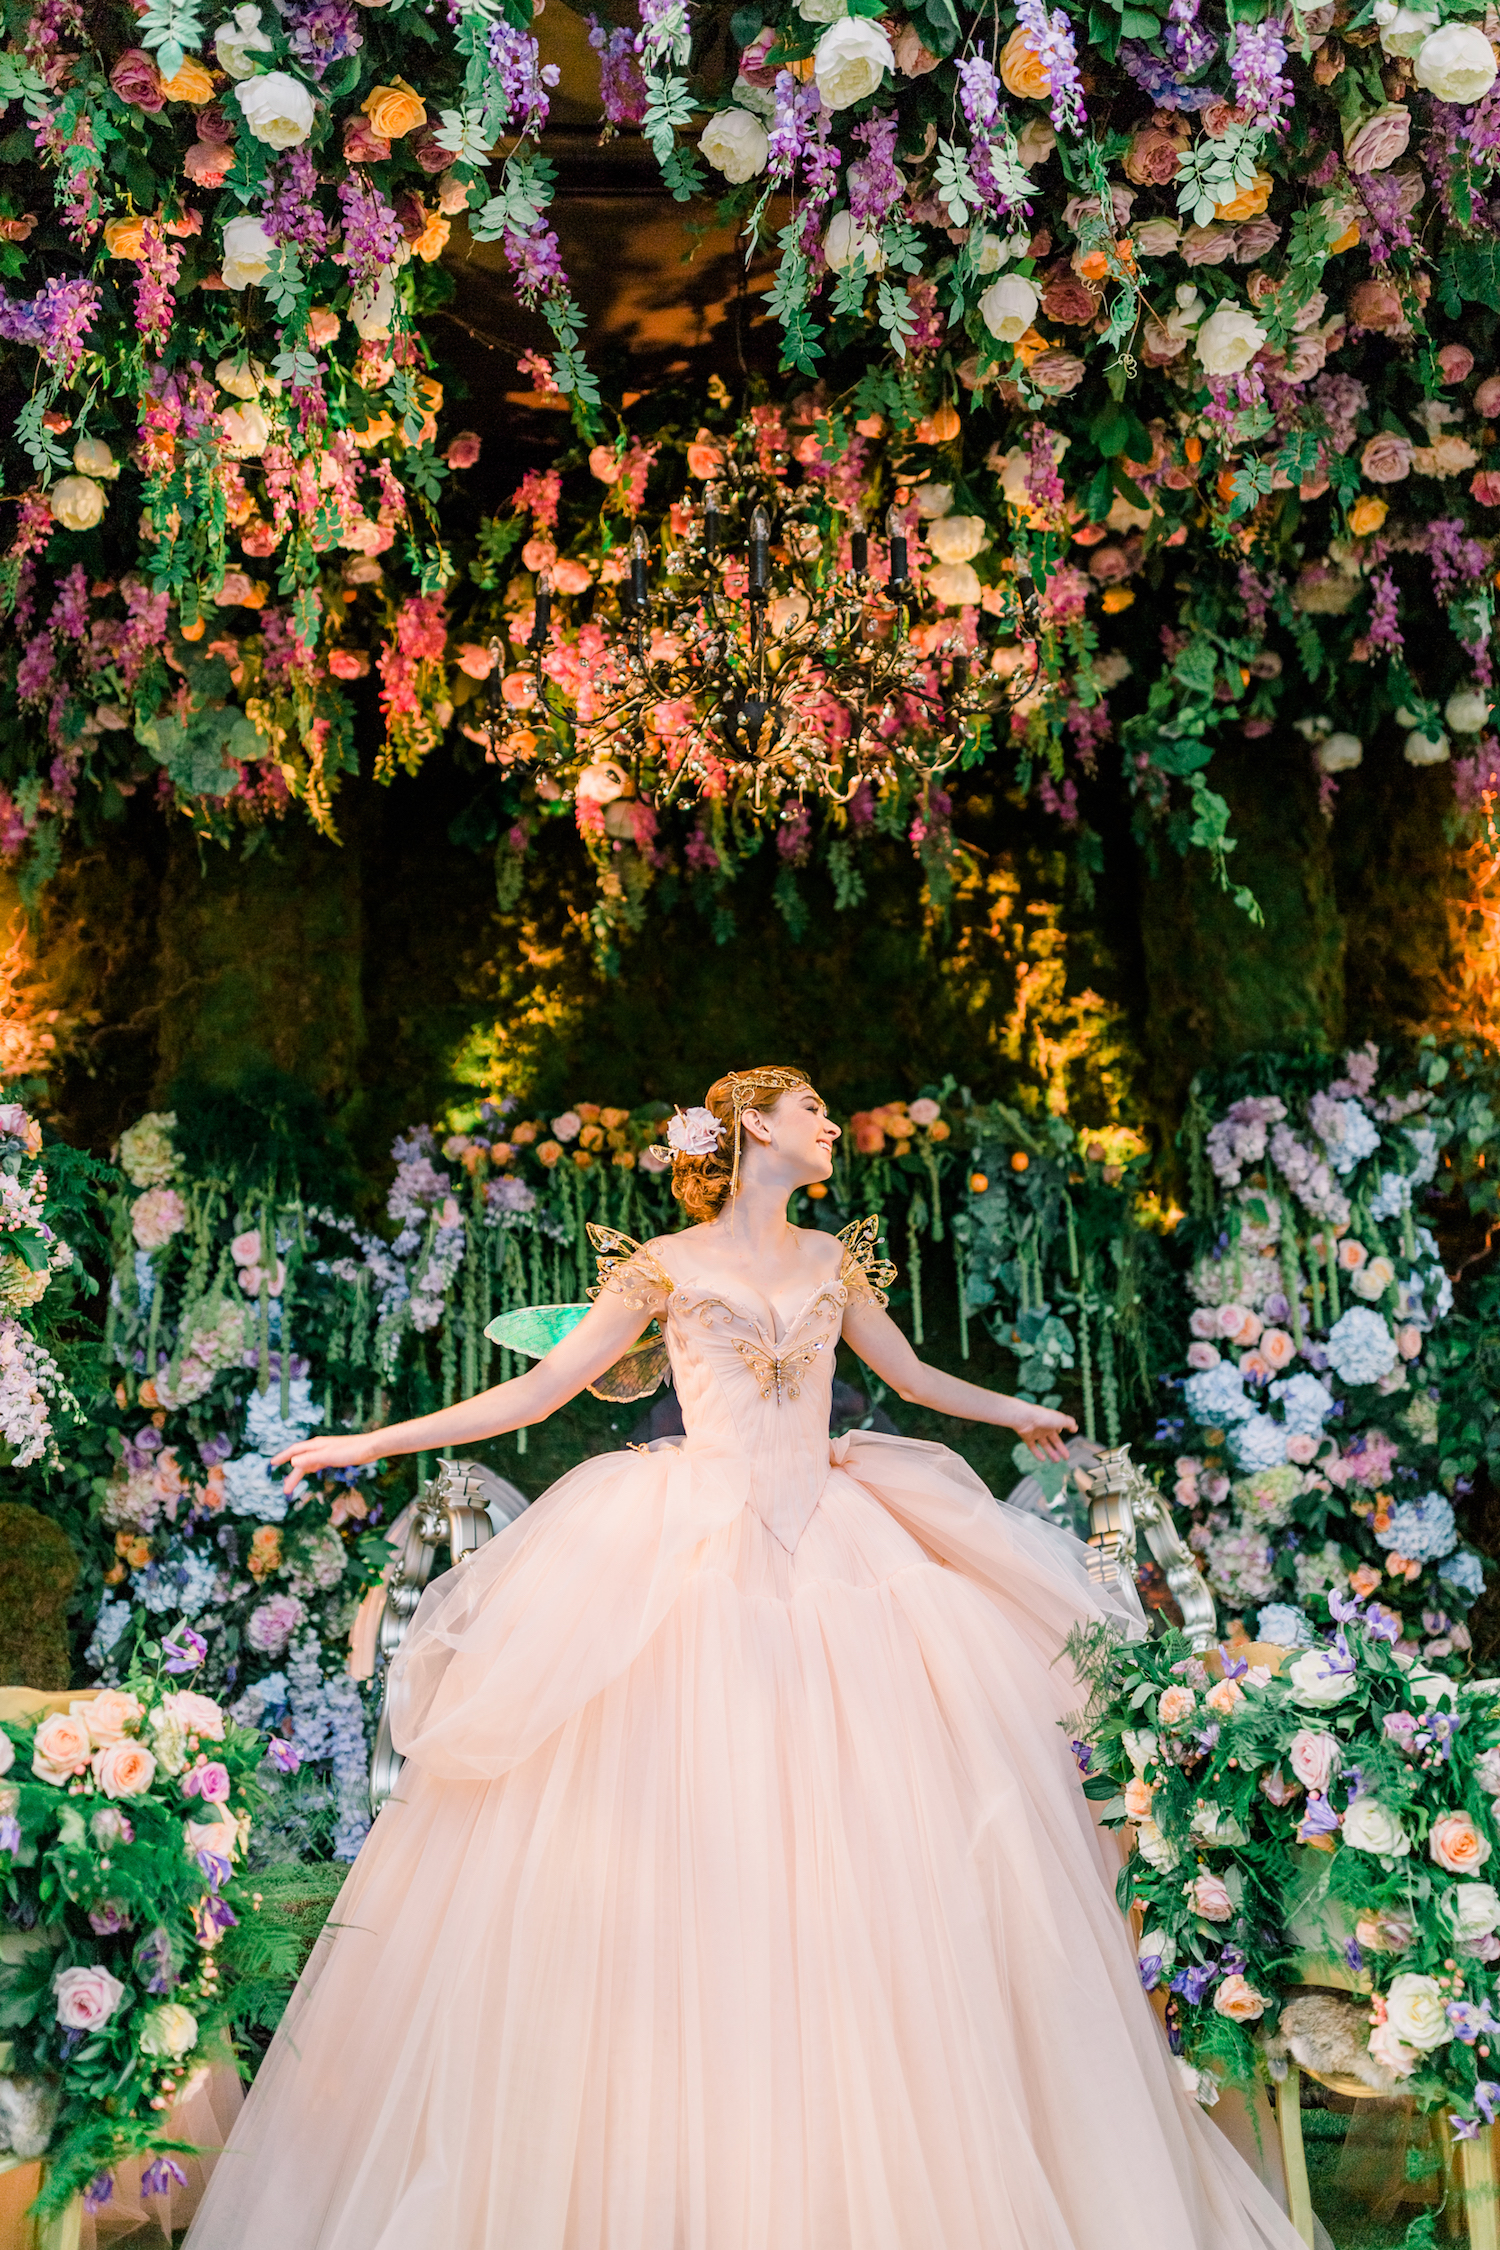 Enchanted Garden Themed Wedding Inspiration | Amie Bone Flowers | London Weddings | Watercolor Floral Themed Weddings